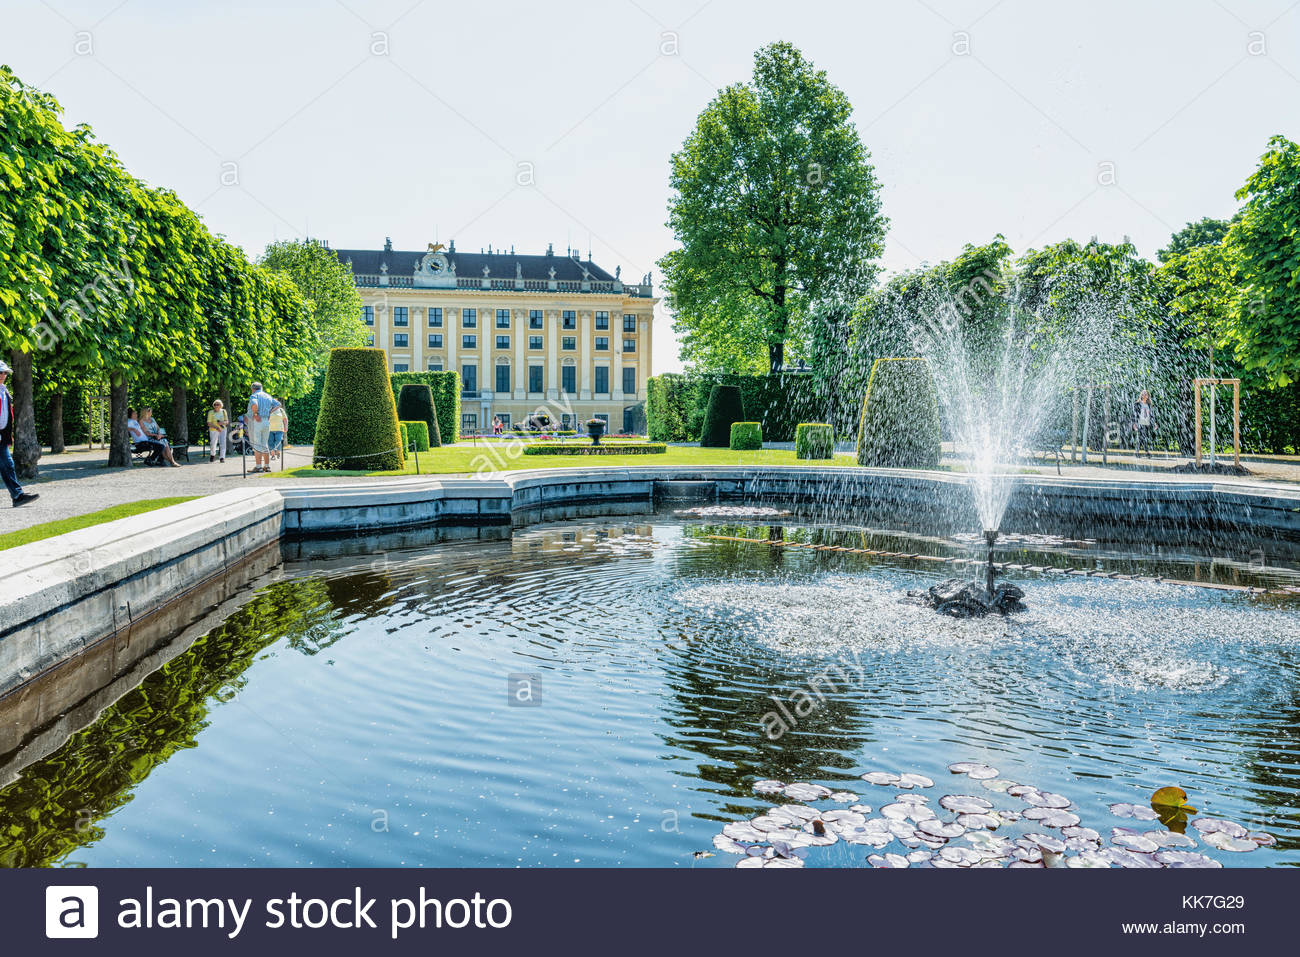 Vienna tourists at a beautiful fountain in the garden of the Palace of Schönbrunn in bright daylight - Stock Image